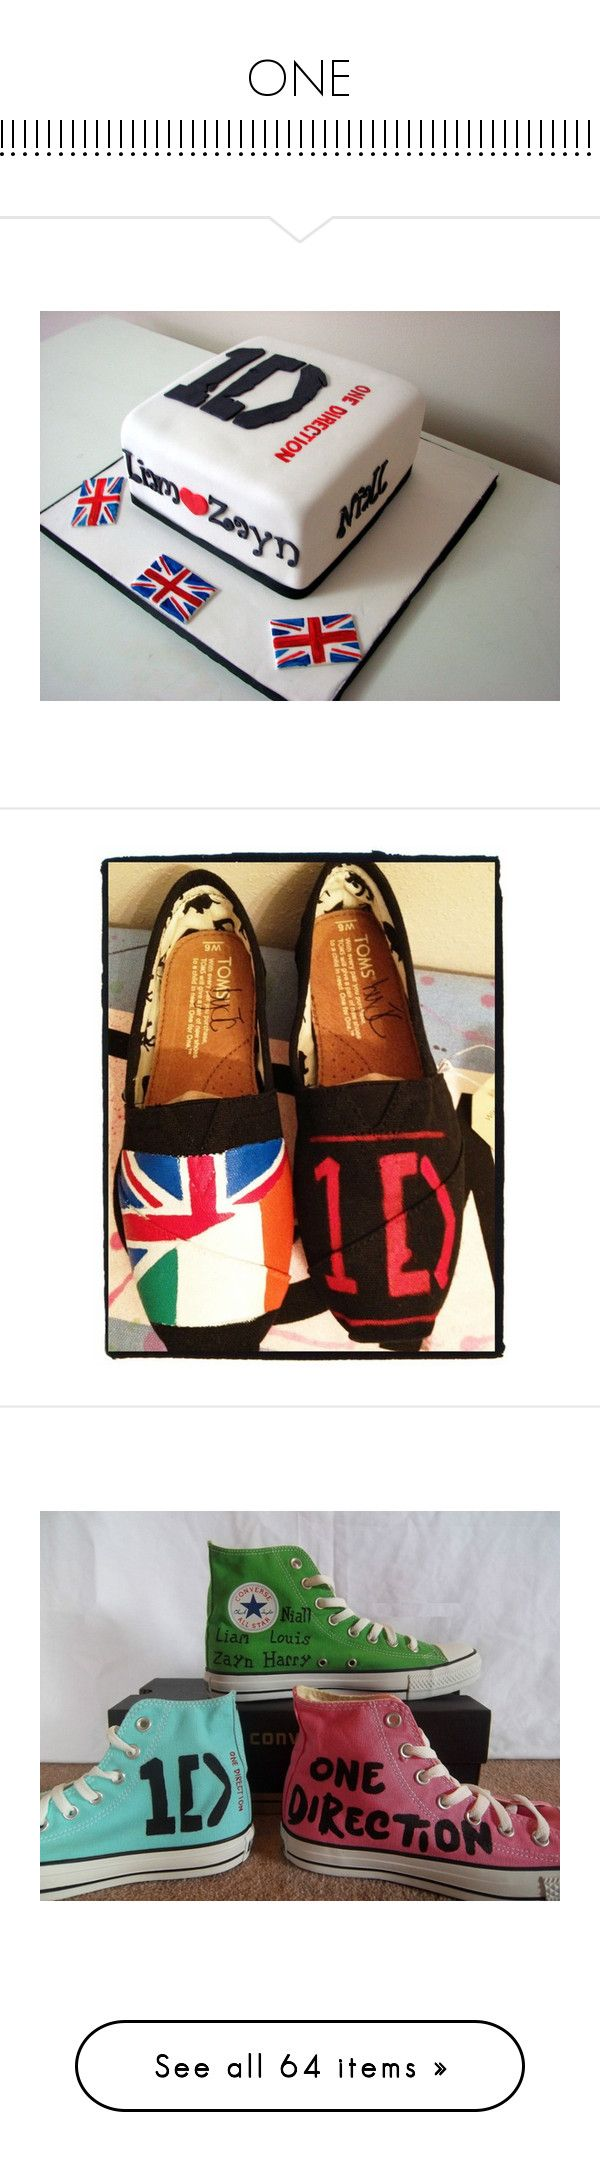 """""""ONE DIRECTION!!!!!!!!!!!!!!!!!!!!!!!!!!!!!!!!!!!!!!!!!!!!!!!!!!!!!!!!!!!!!!!!!!!!!!!!!!!!!!!!!!!!!!!!!!!!!!!!!!!!!!!!!!!!!!!!!!!!!!!!!!!!!!!!!!!!!!!!!!!!!!!!!!!!!!!!!!!!!!!!!!!!!!!!!!!!!!!!!!!!!!!!!!!!!!!!!!!!!!!!!!!!!!!!!!!!!!!!!!!!!!!!!!!!!!!!!!!!!!!!!!"""" by anikaalfonso225 ❤ liked on Polyvore featuring one direction, food, 1d, other, pictures, shoes, 1d stuff, toms, all star and tops"""